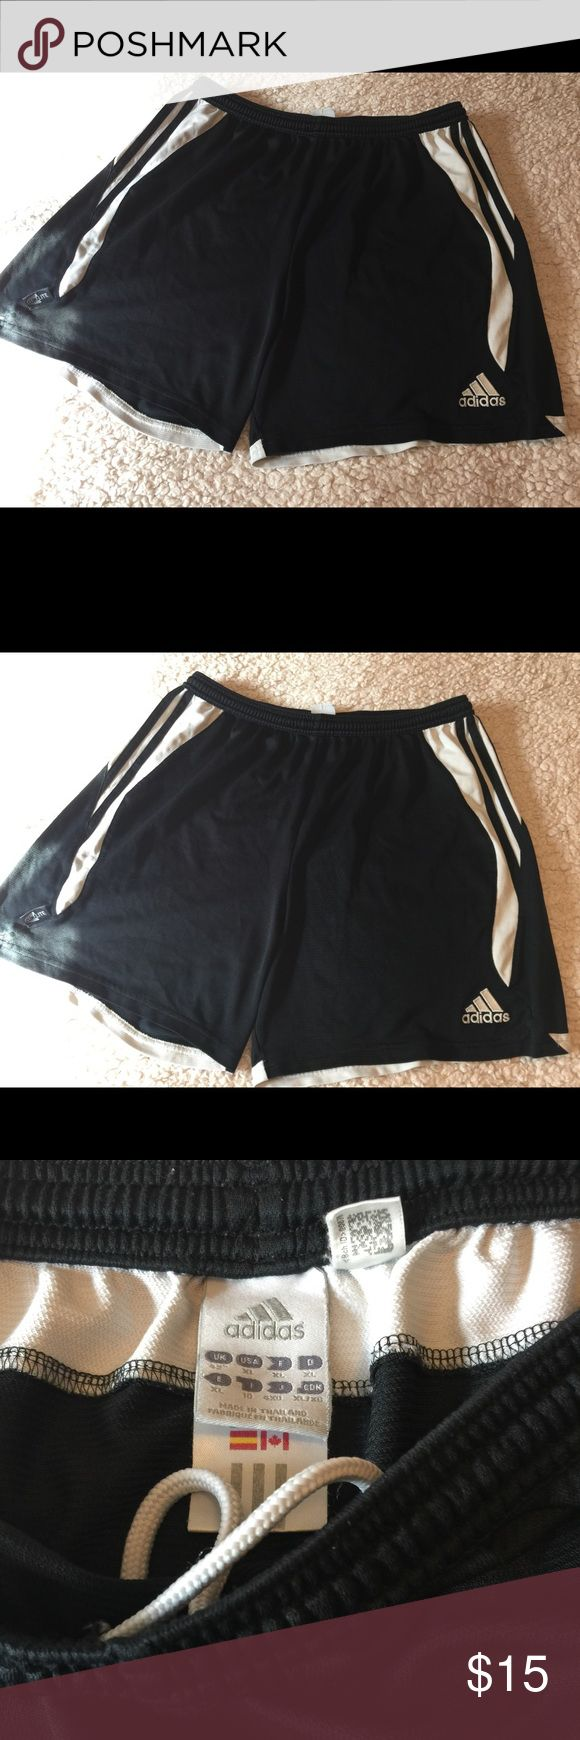 Adidas xl clima cool shorts Adidas women's xl clima cool shorts. In excellent, like new condition. Same day shipping weekdays. From a smoke free, animal free home. Adidas Shorts